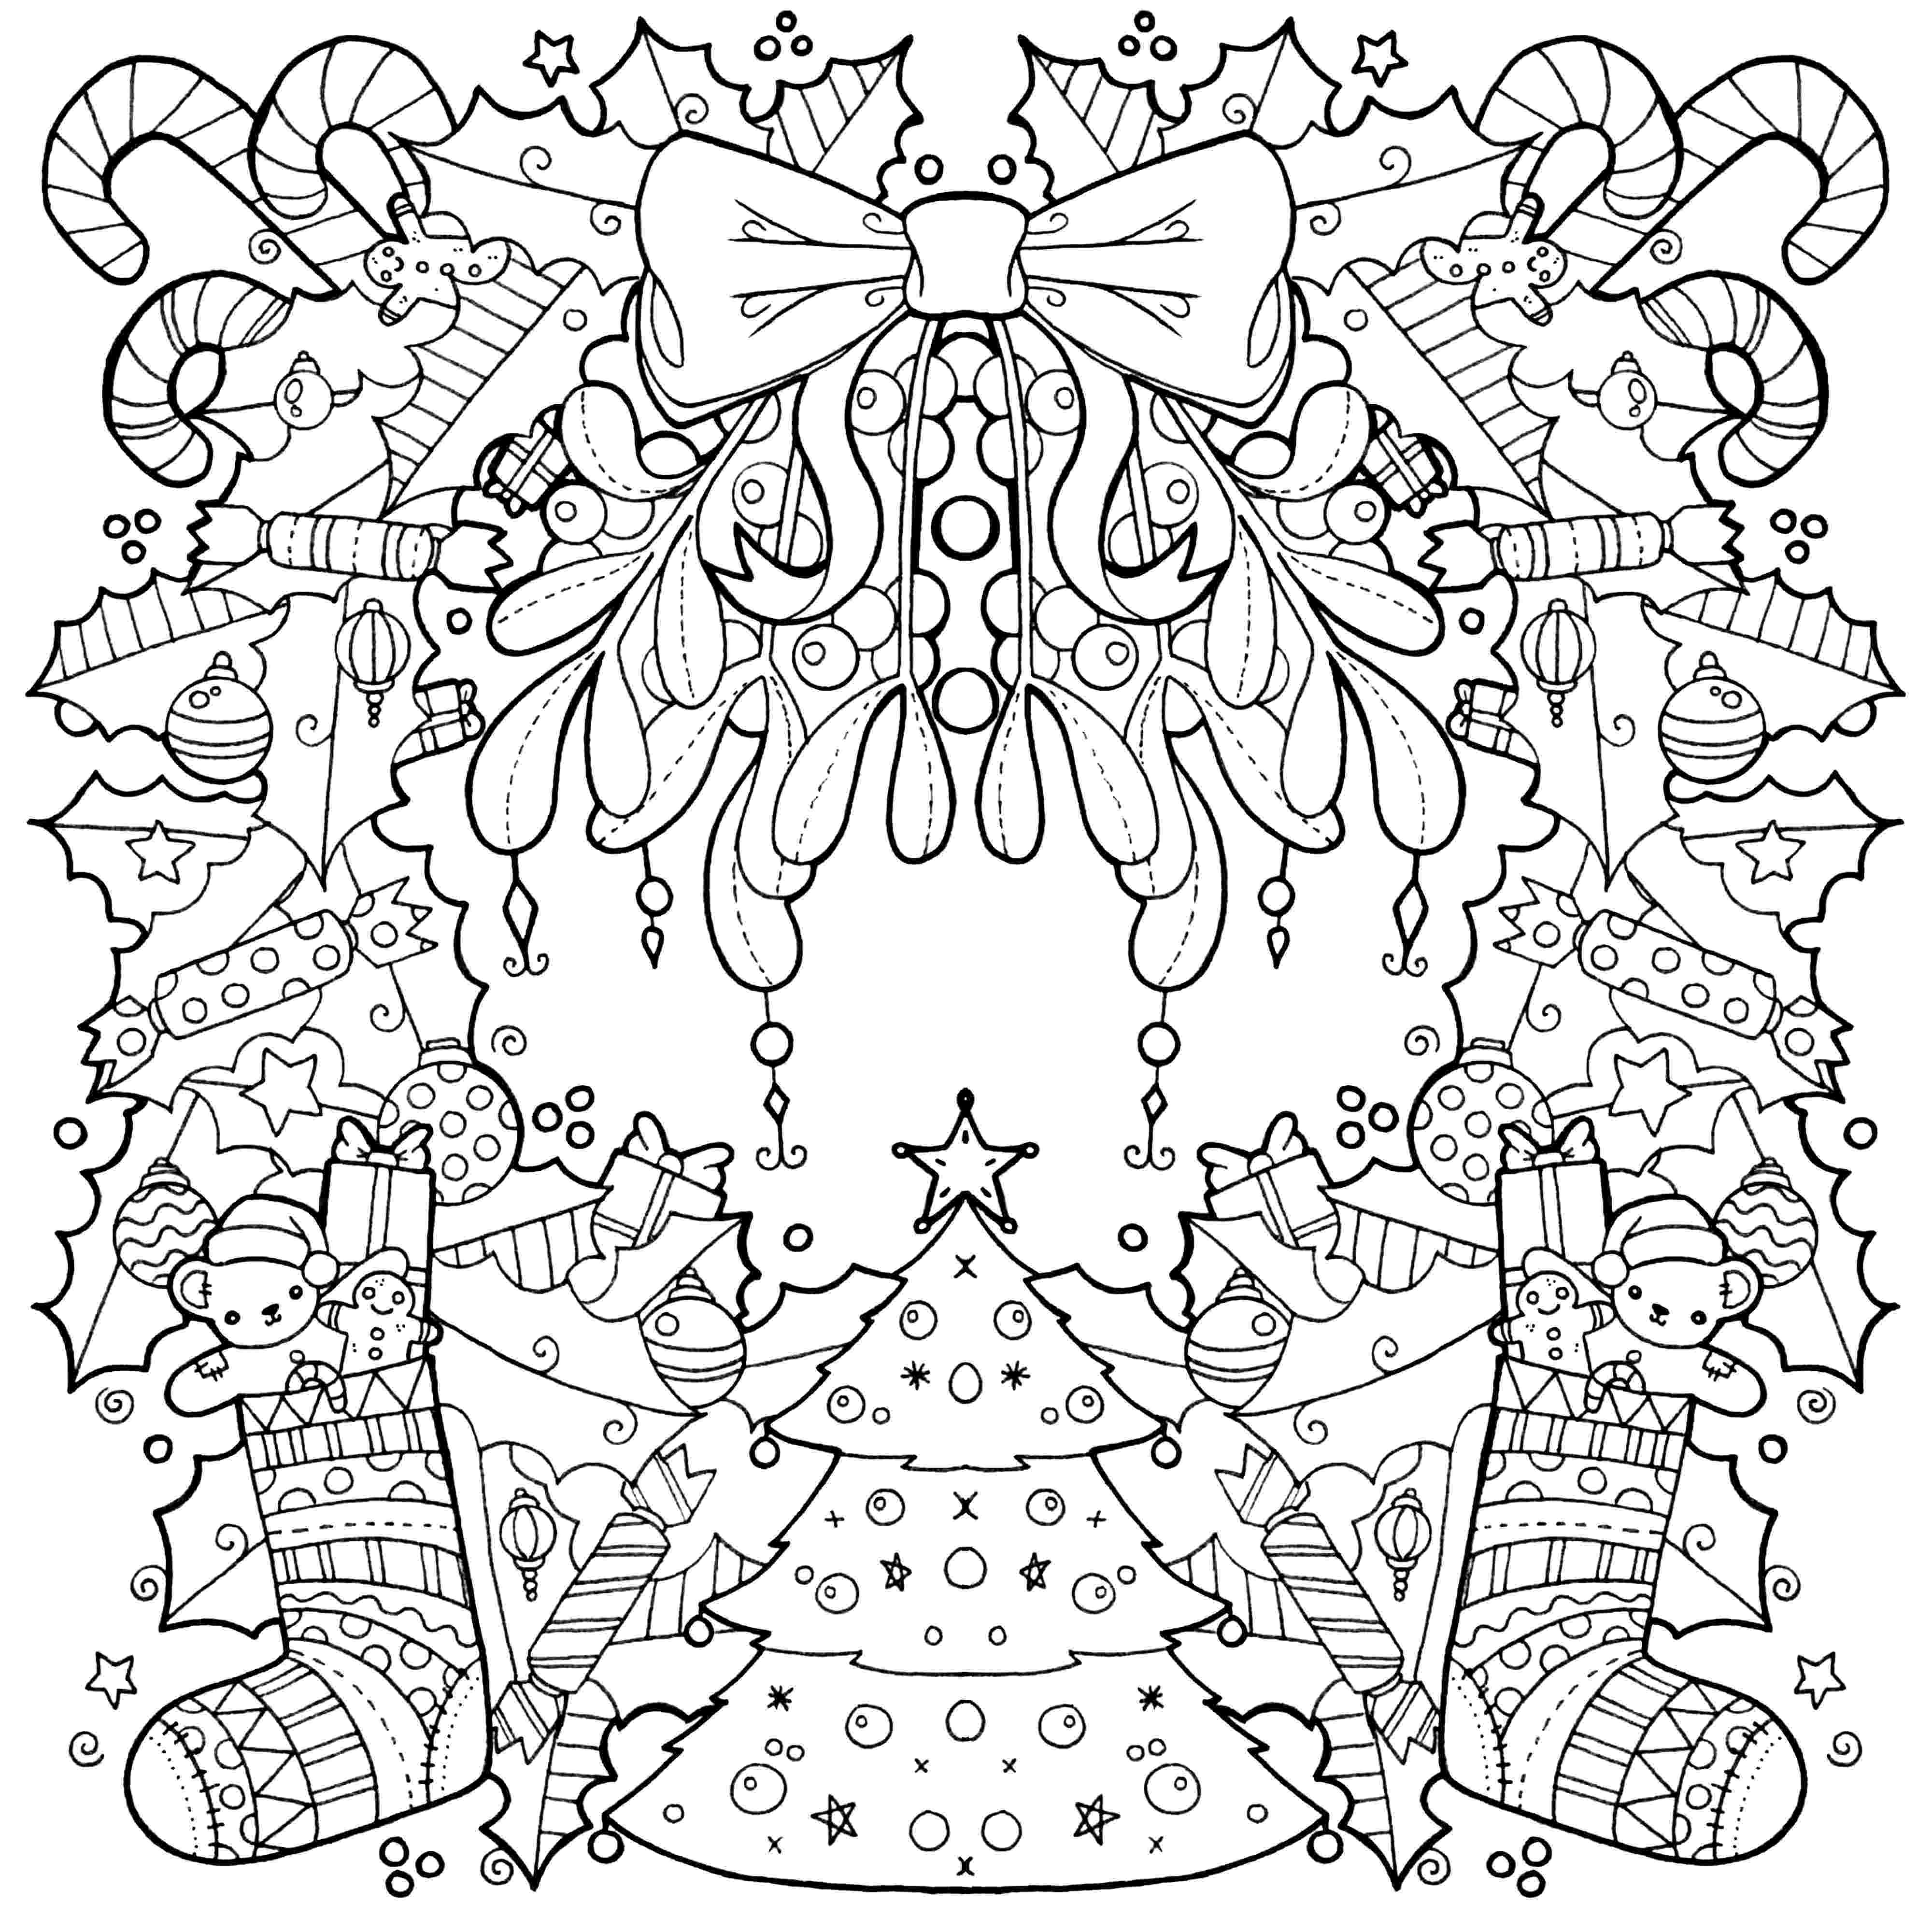 mindfulness colouring pages mindfulness coloring pages best coloring pages for kids mindfulness colouring pages